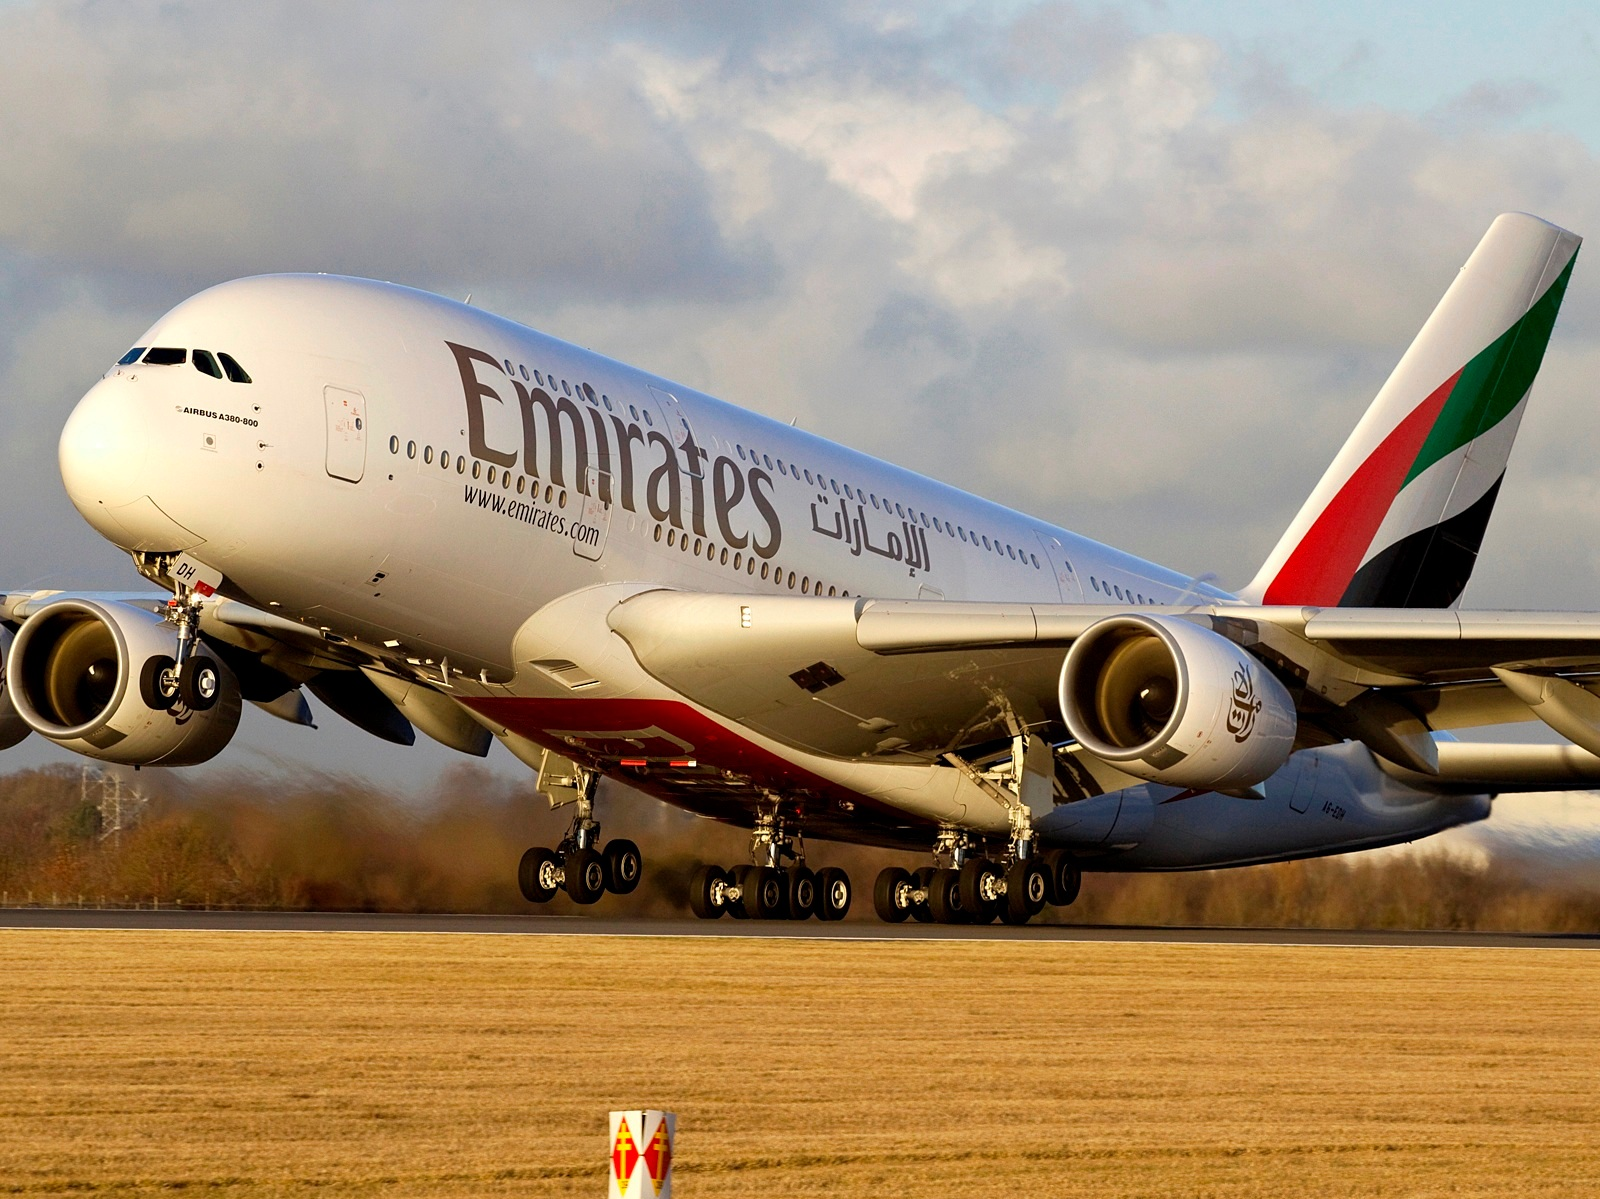 Emirates Airbus A380-800 Sunset Takeoff Aircraft Wallpaper